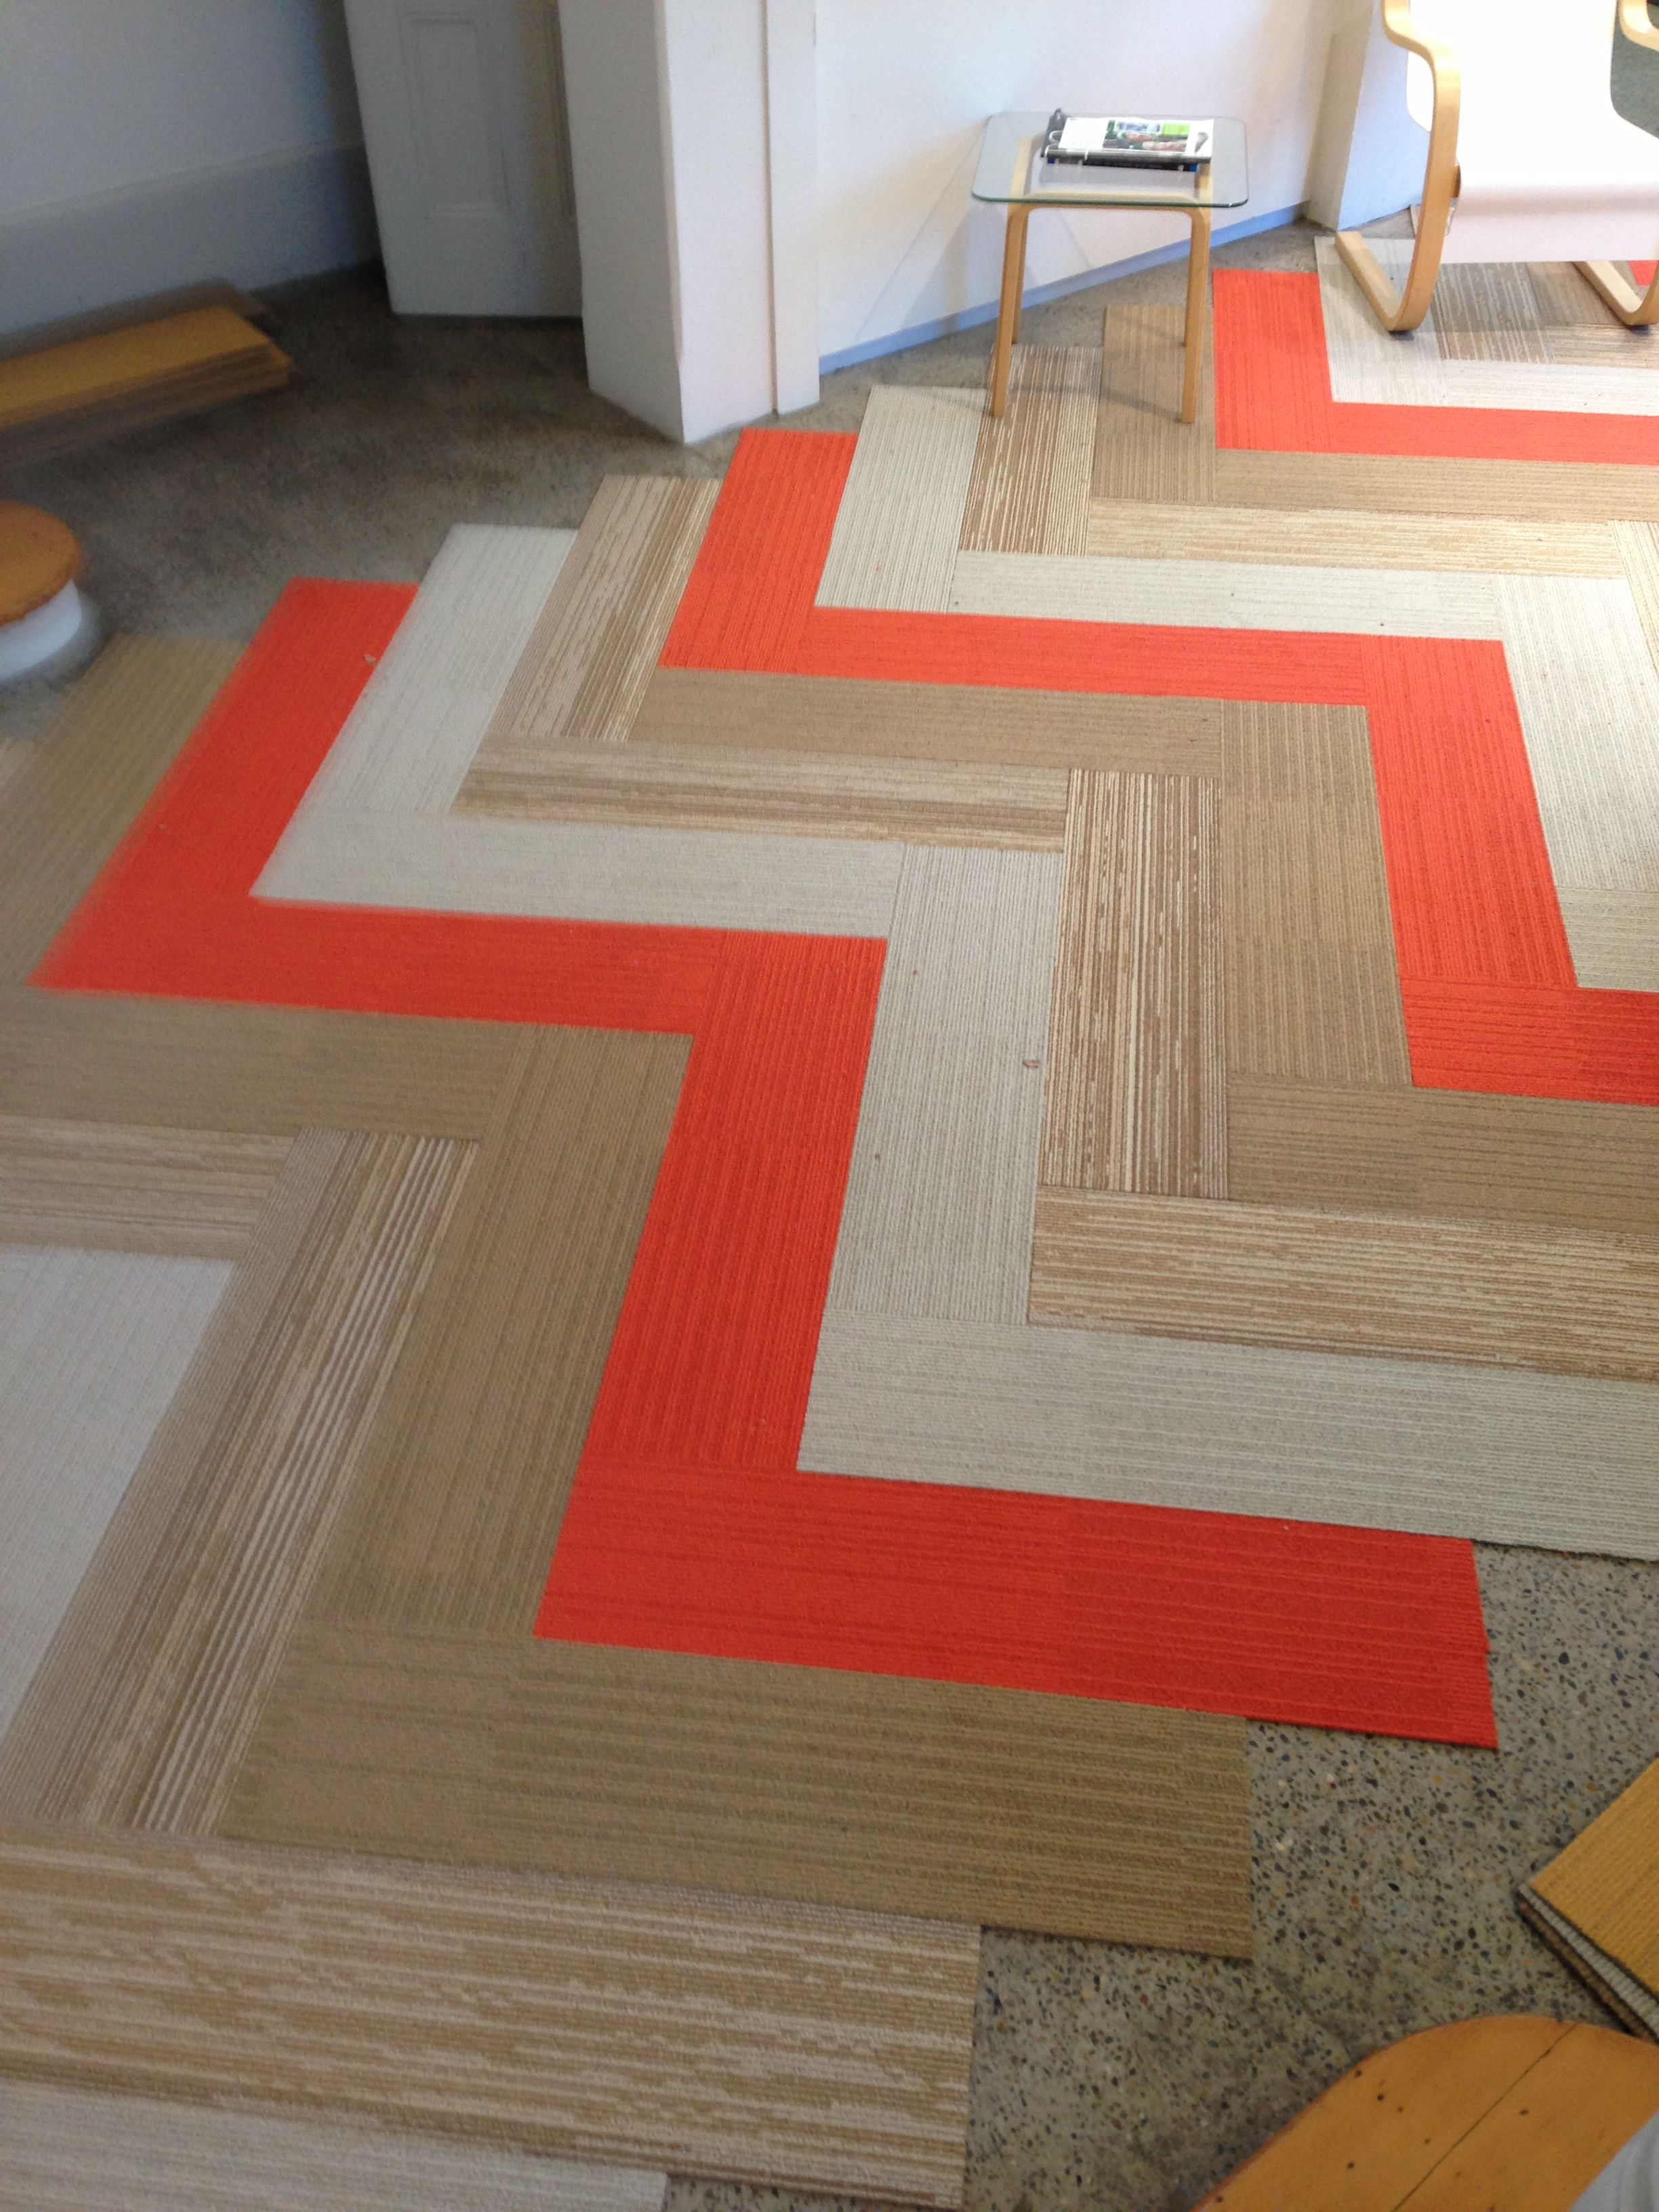 Commercial Carpet Tiles · zig zag just launched new PLANKS sydney showroom, #Planks #colour# Carpet Floor